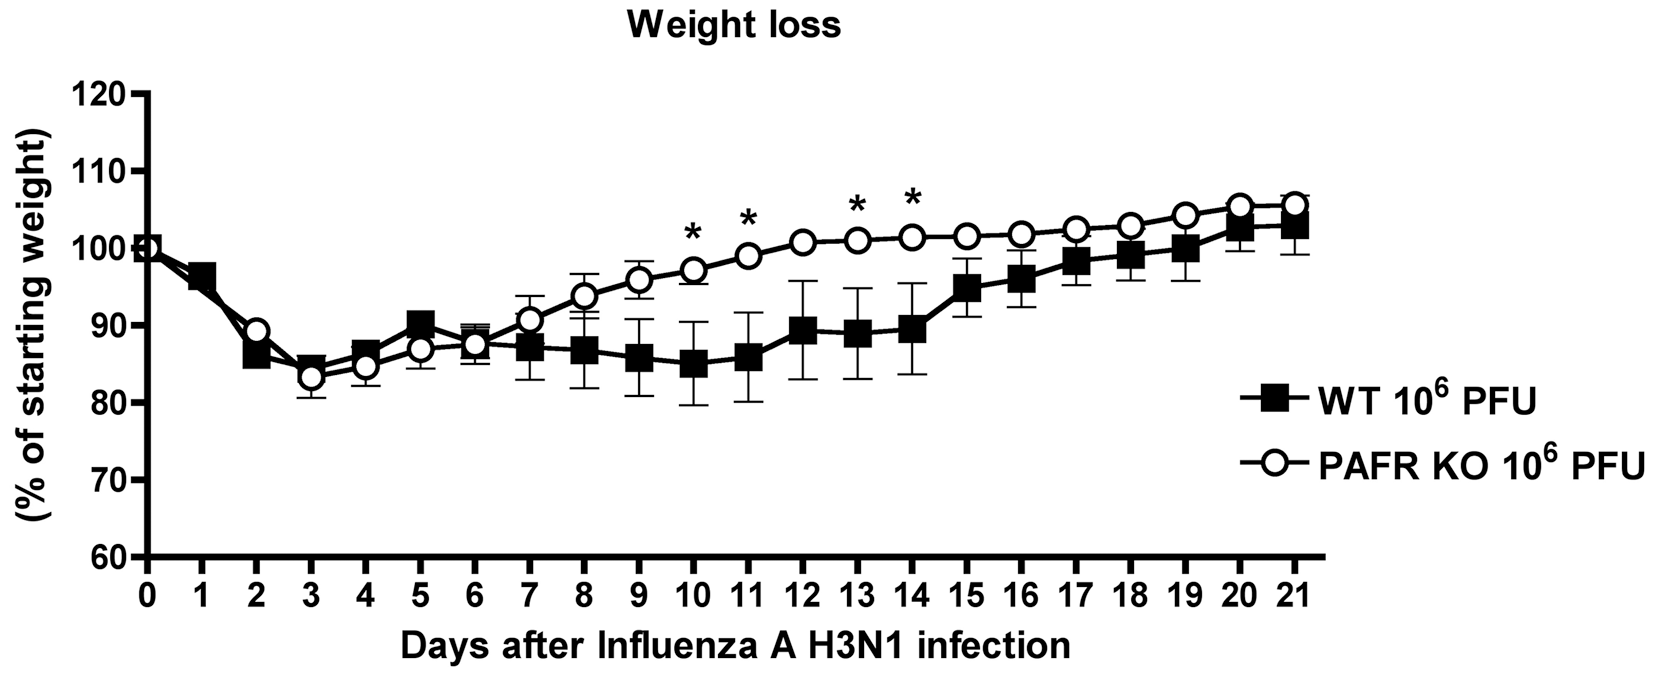 Weight loss after Influenza A (equine/Cordoba/18/1985 - Yamagata/32/1989) H3N1 infection of WT and PAFR-deficient mice.